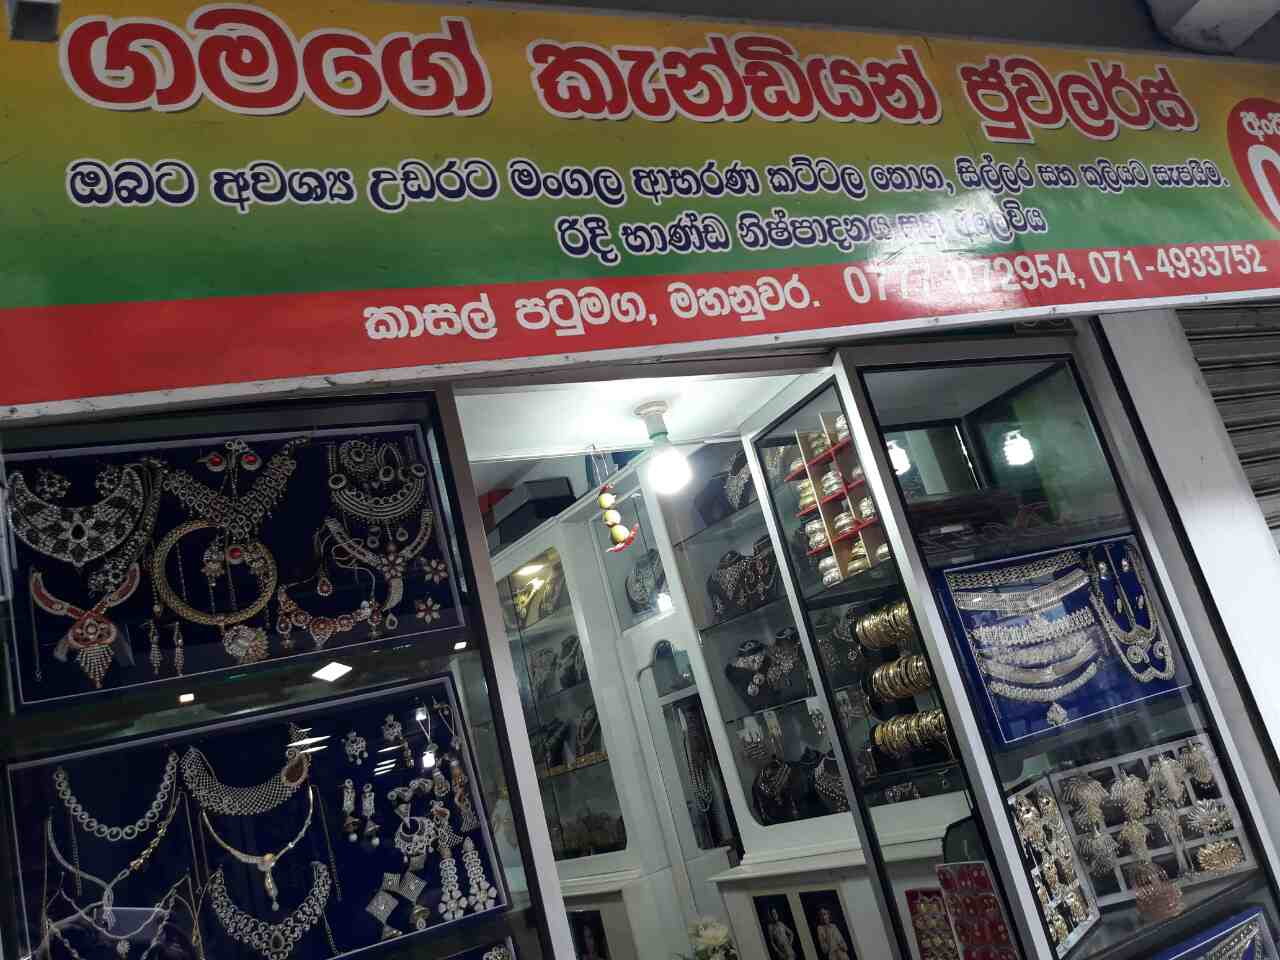 Gamage Image Gallery04